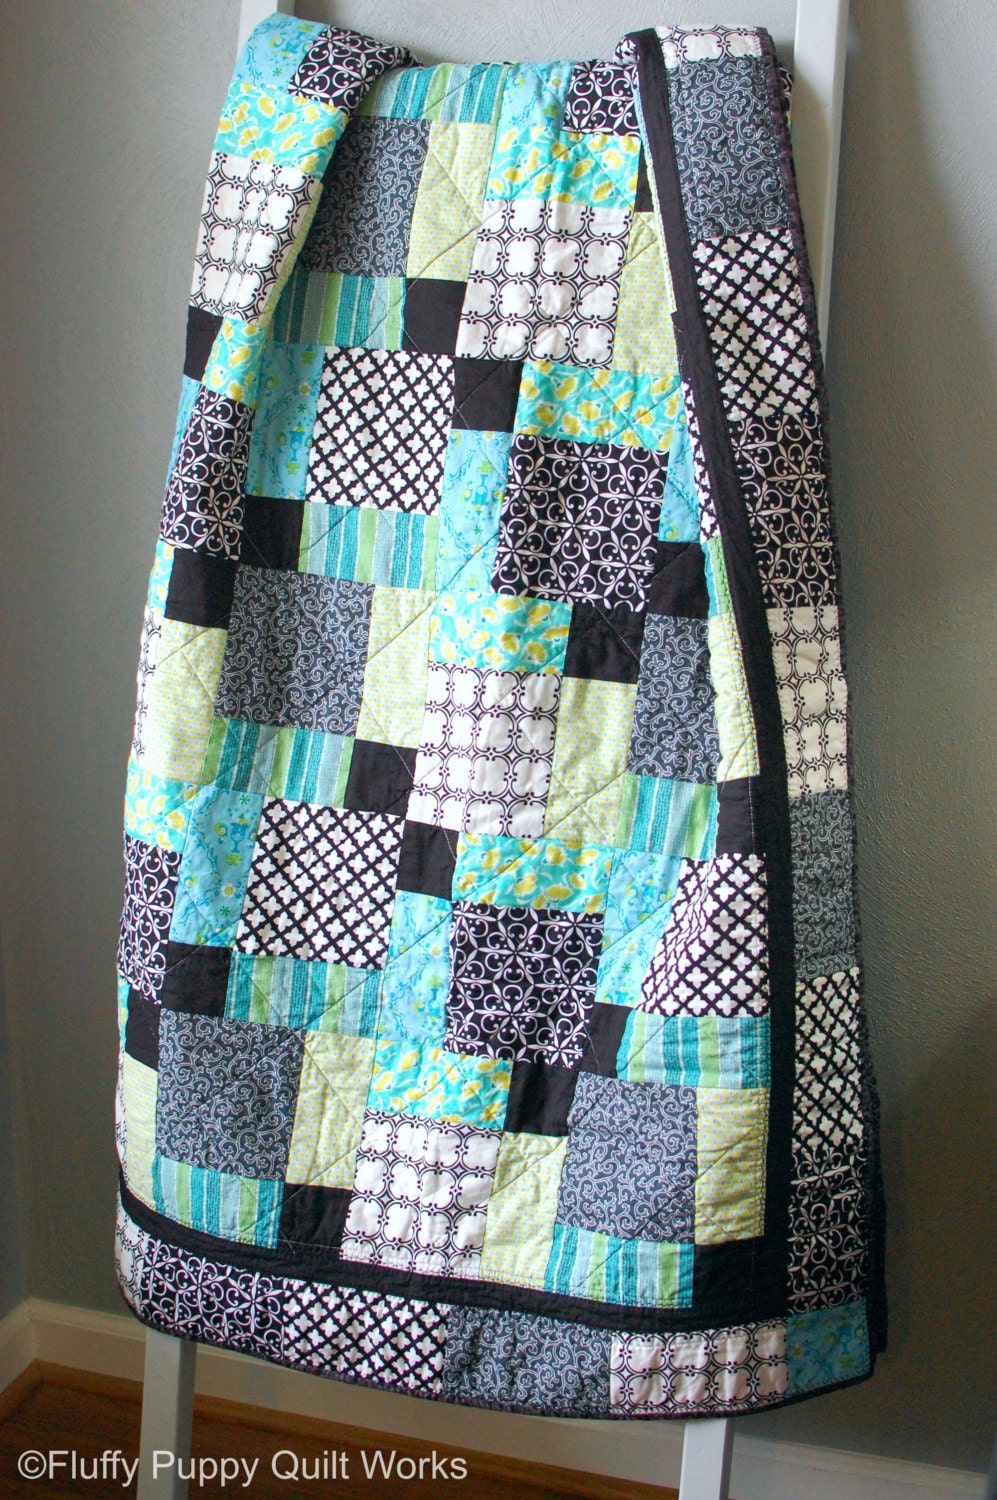 Modern Lap Quilt Teal Black White Green Blue Throw Quilt